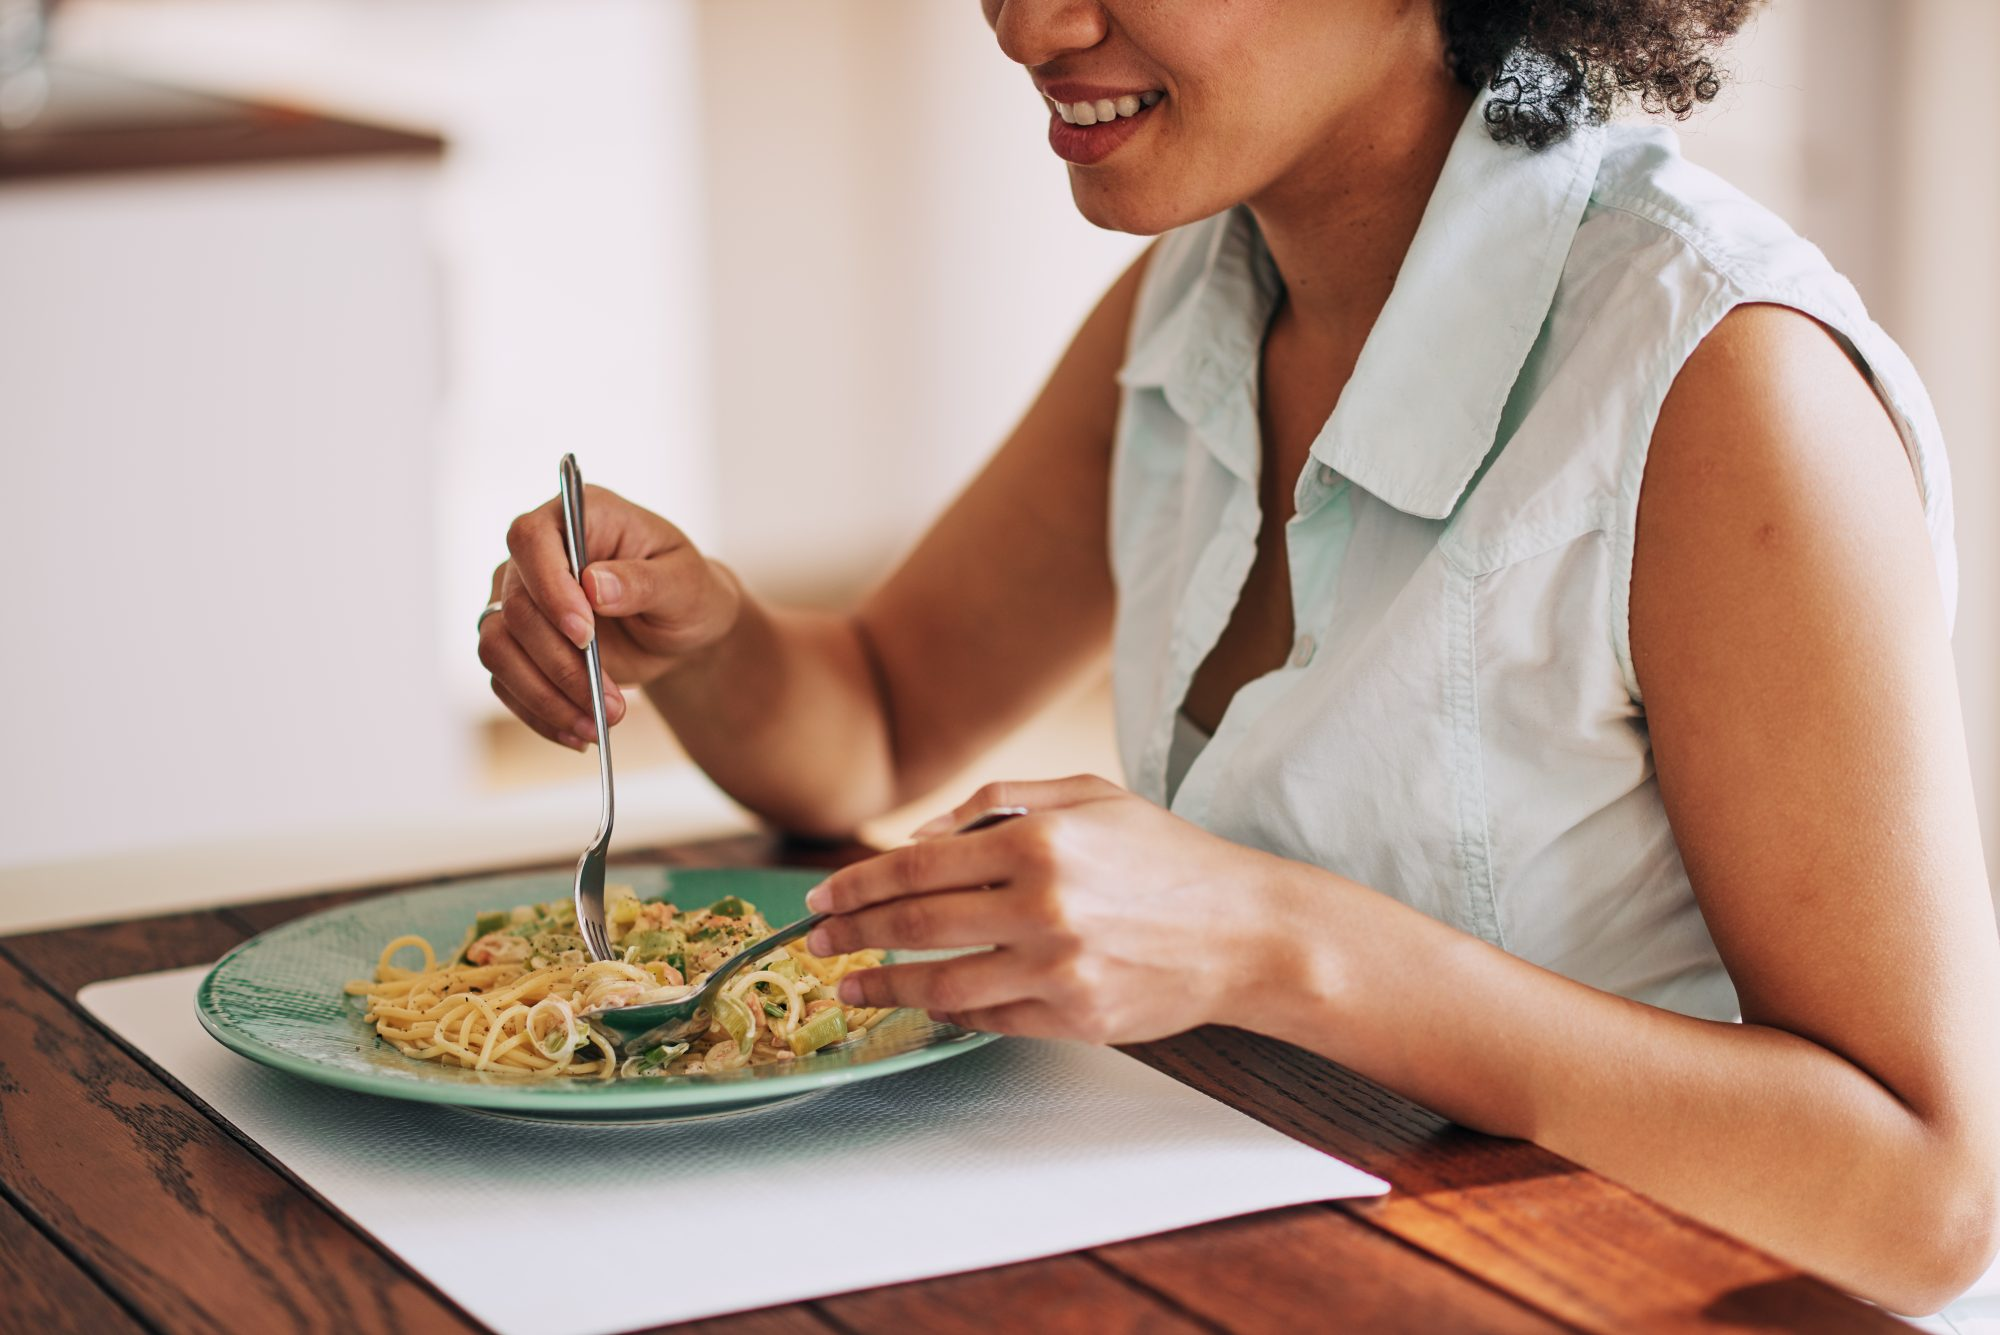 The Anti-Aging Superfood That Tastes Delicious in Pasta